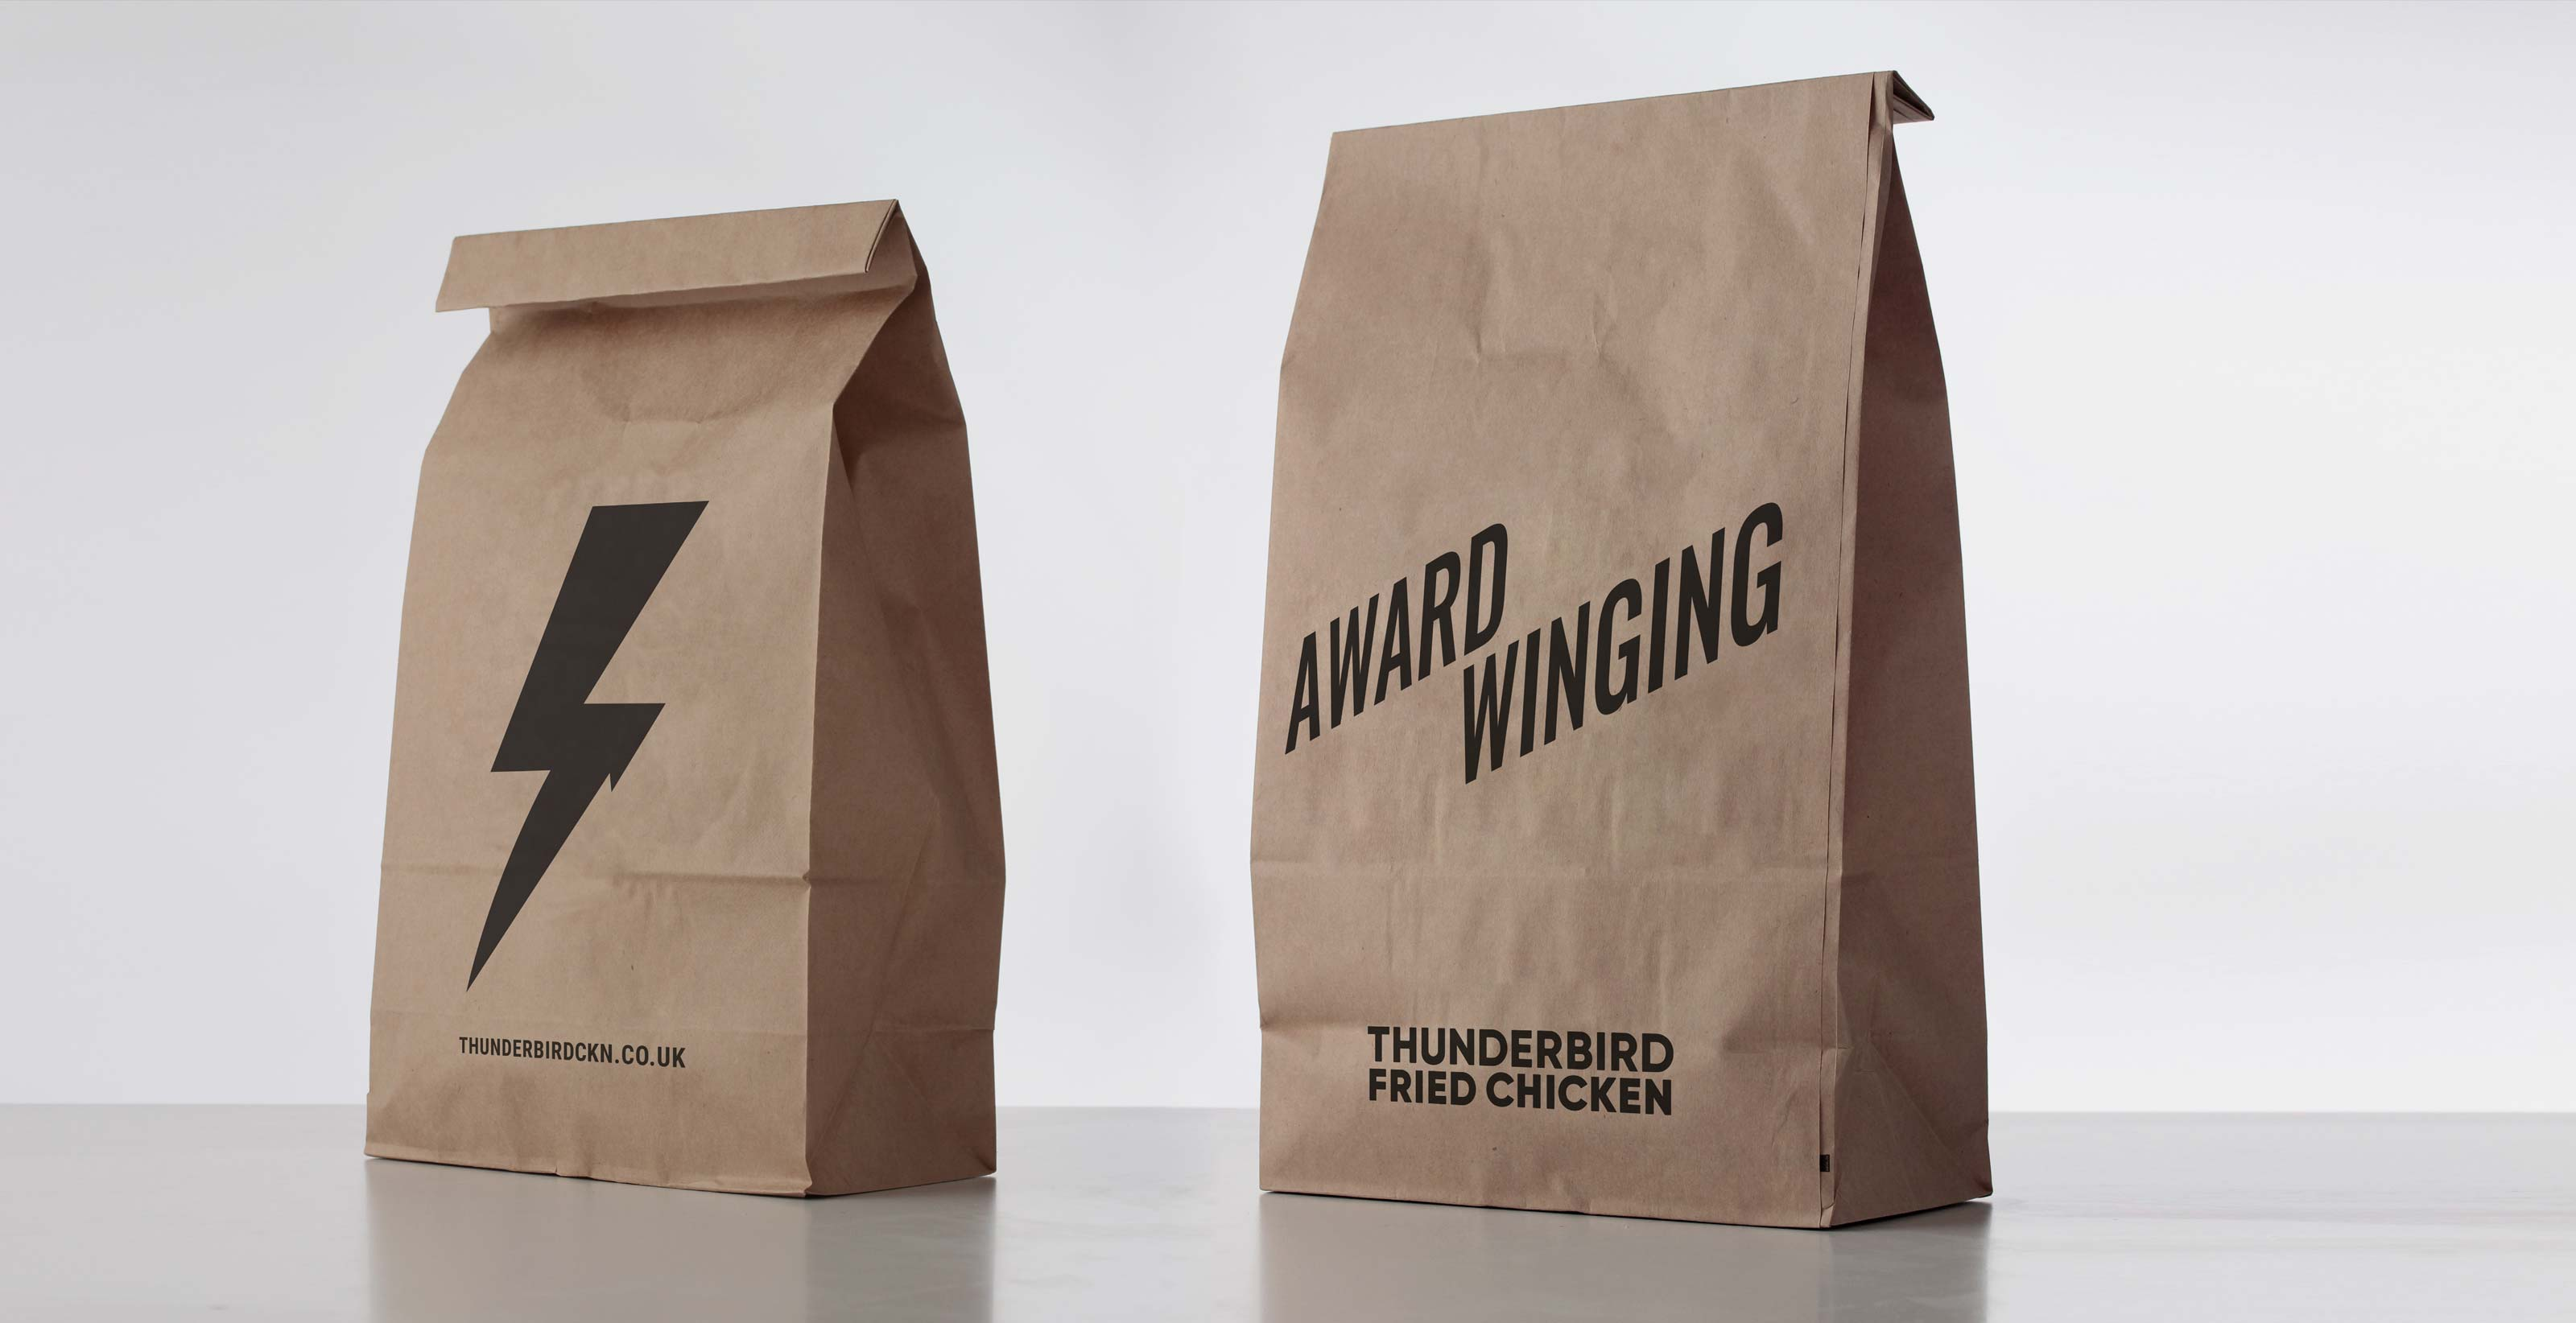 Experience on ground level and extensive research revealed a big consumer appetite for a new challenger brand to shake up the fried chicken status quo, much like Five Guys and Shake Shack have done with burgers. Spinach's role was to interpret the market analysis and customer insight, then turn it into a unique, immediately recognisable and highly memorable high street food retail brand.